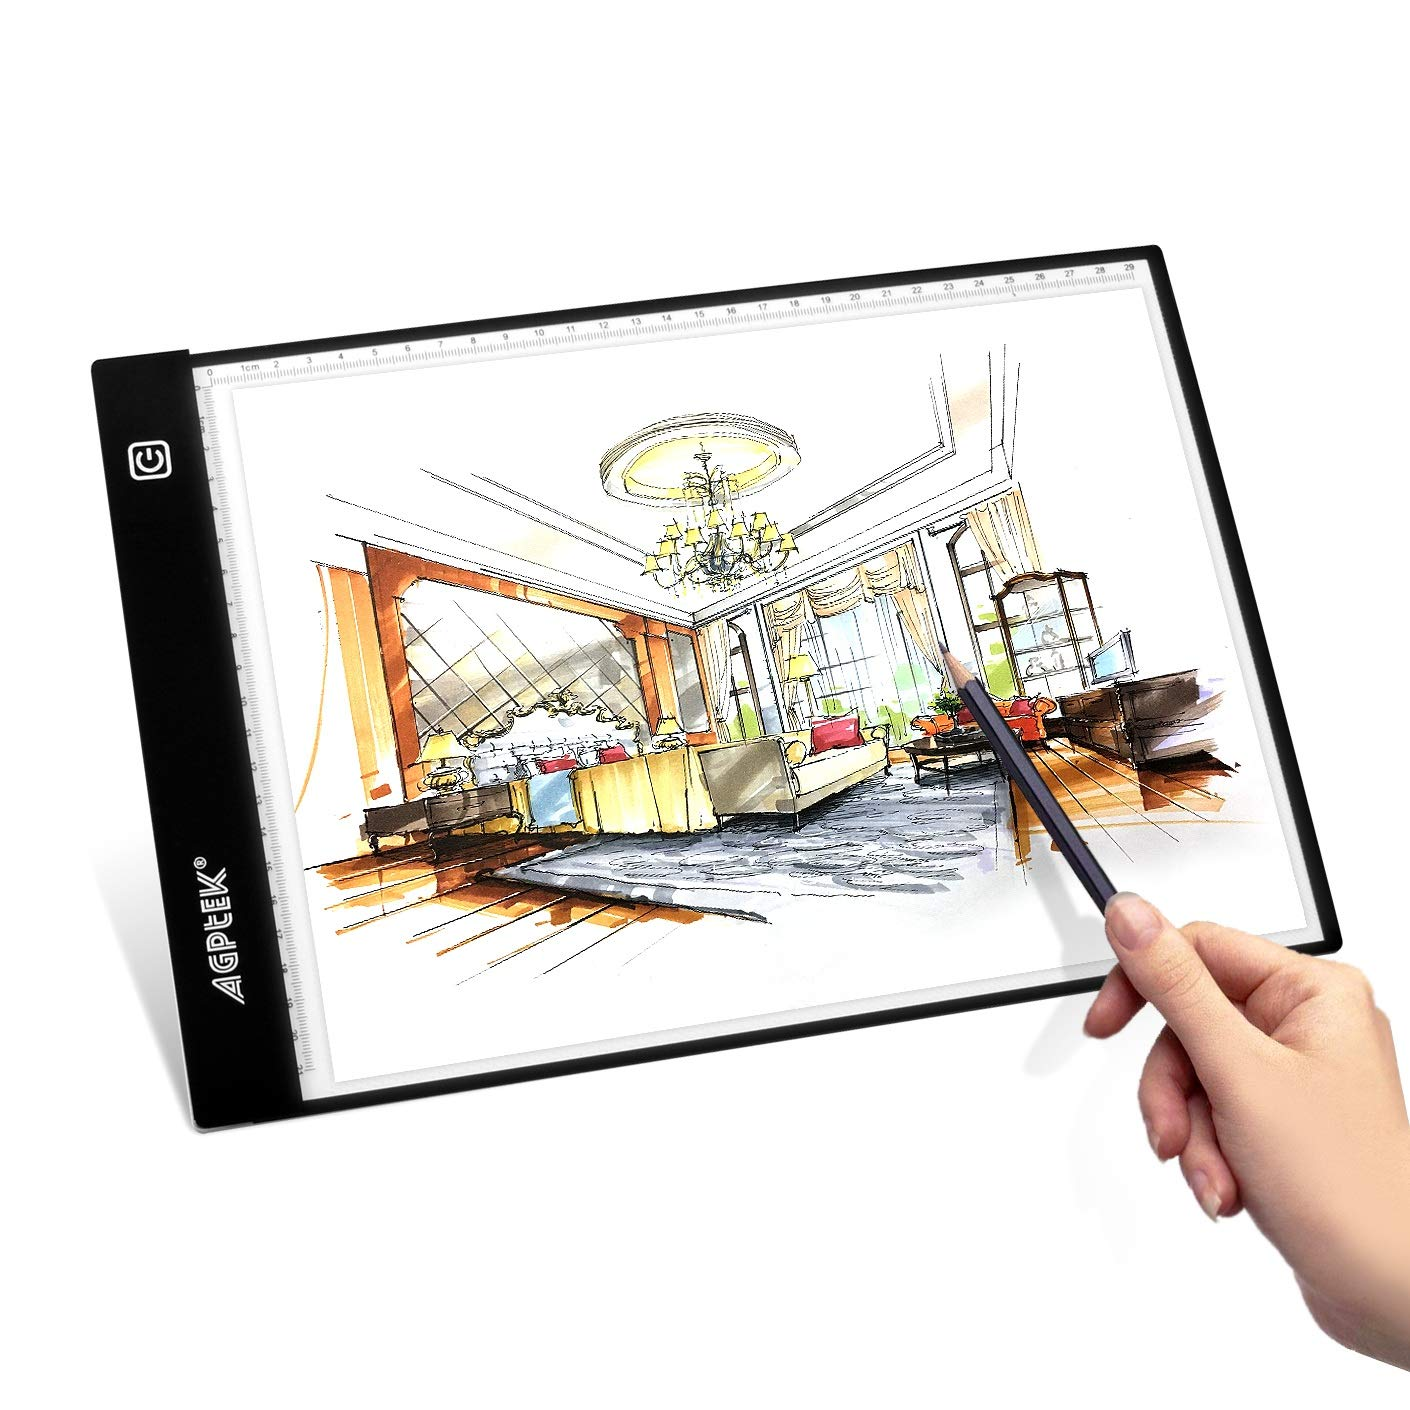 A3 Light Box, Magnetic LED Copy Board Drawing Tracing Light Pad, Ultra-thin Stepless Brightness Control with Memory Function USB Powered Tatoo Pad for Animation, Sketching, Designing, Stencilling X-ray Viewing AGPTEK